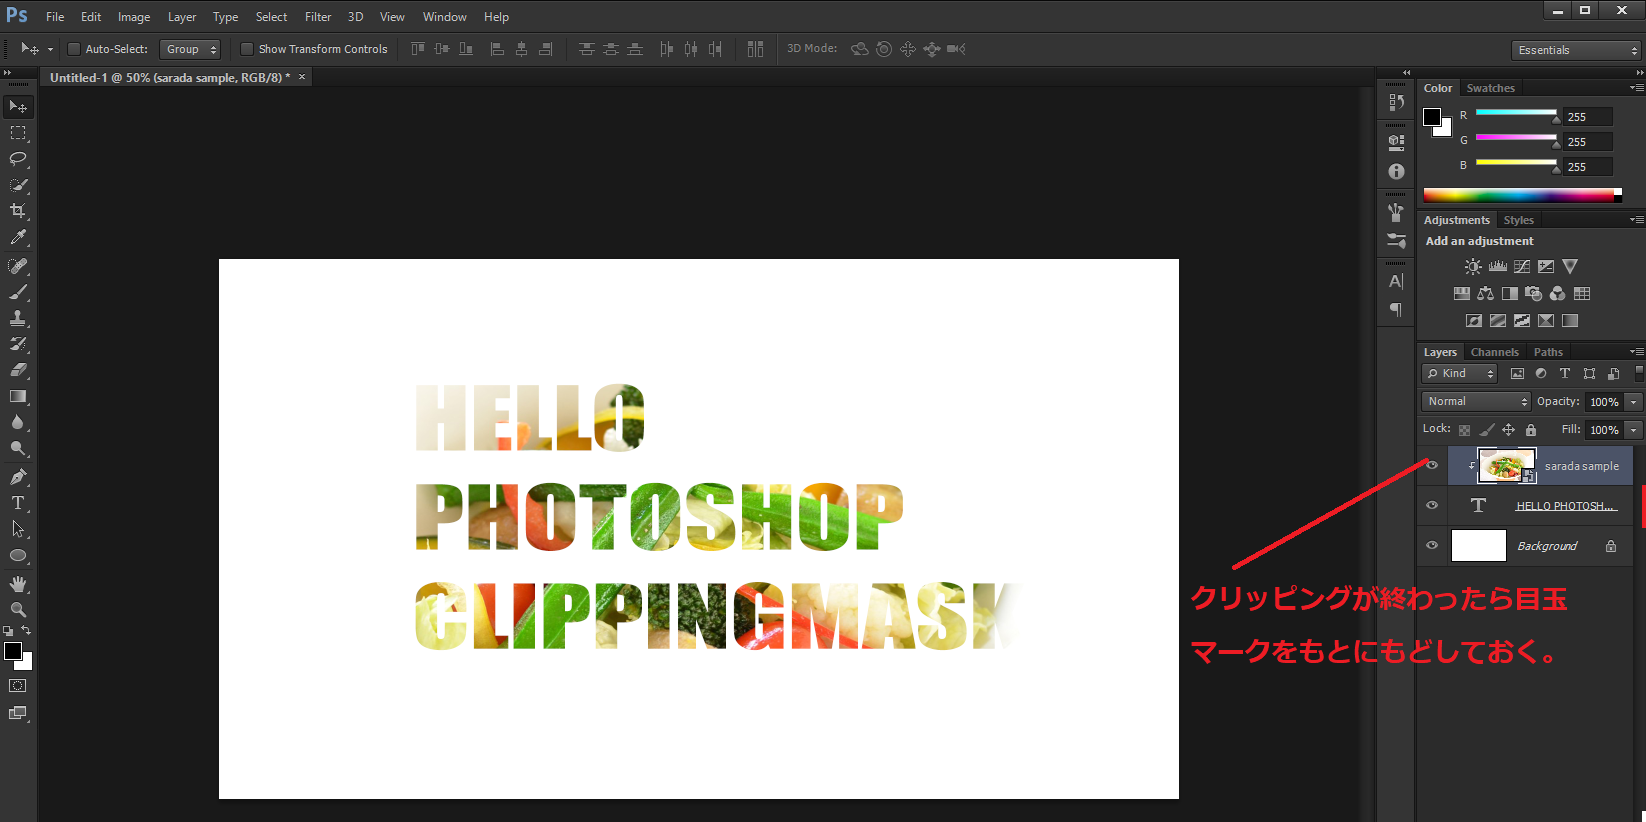 photoshop clippingmask(5)